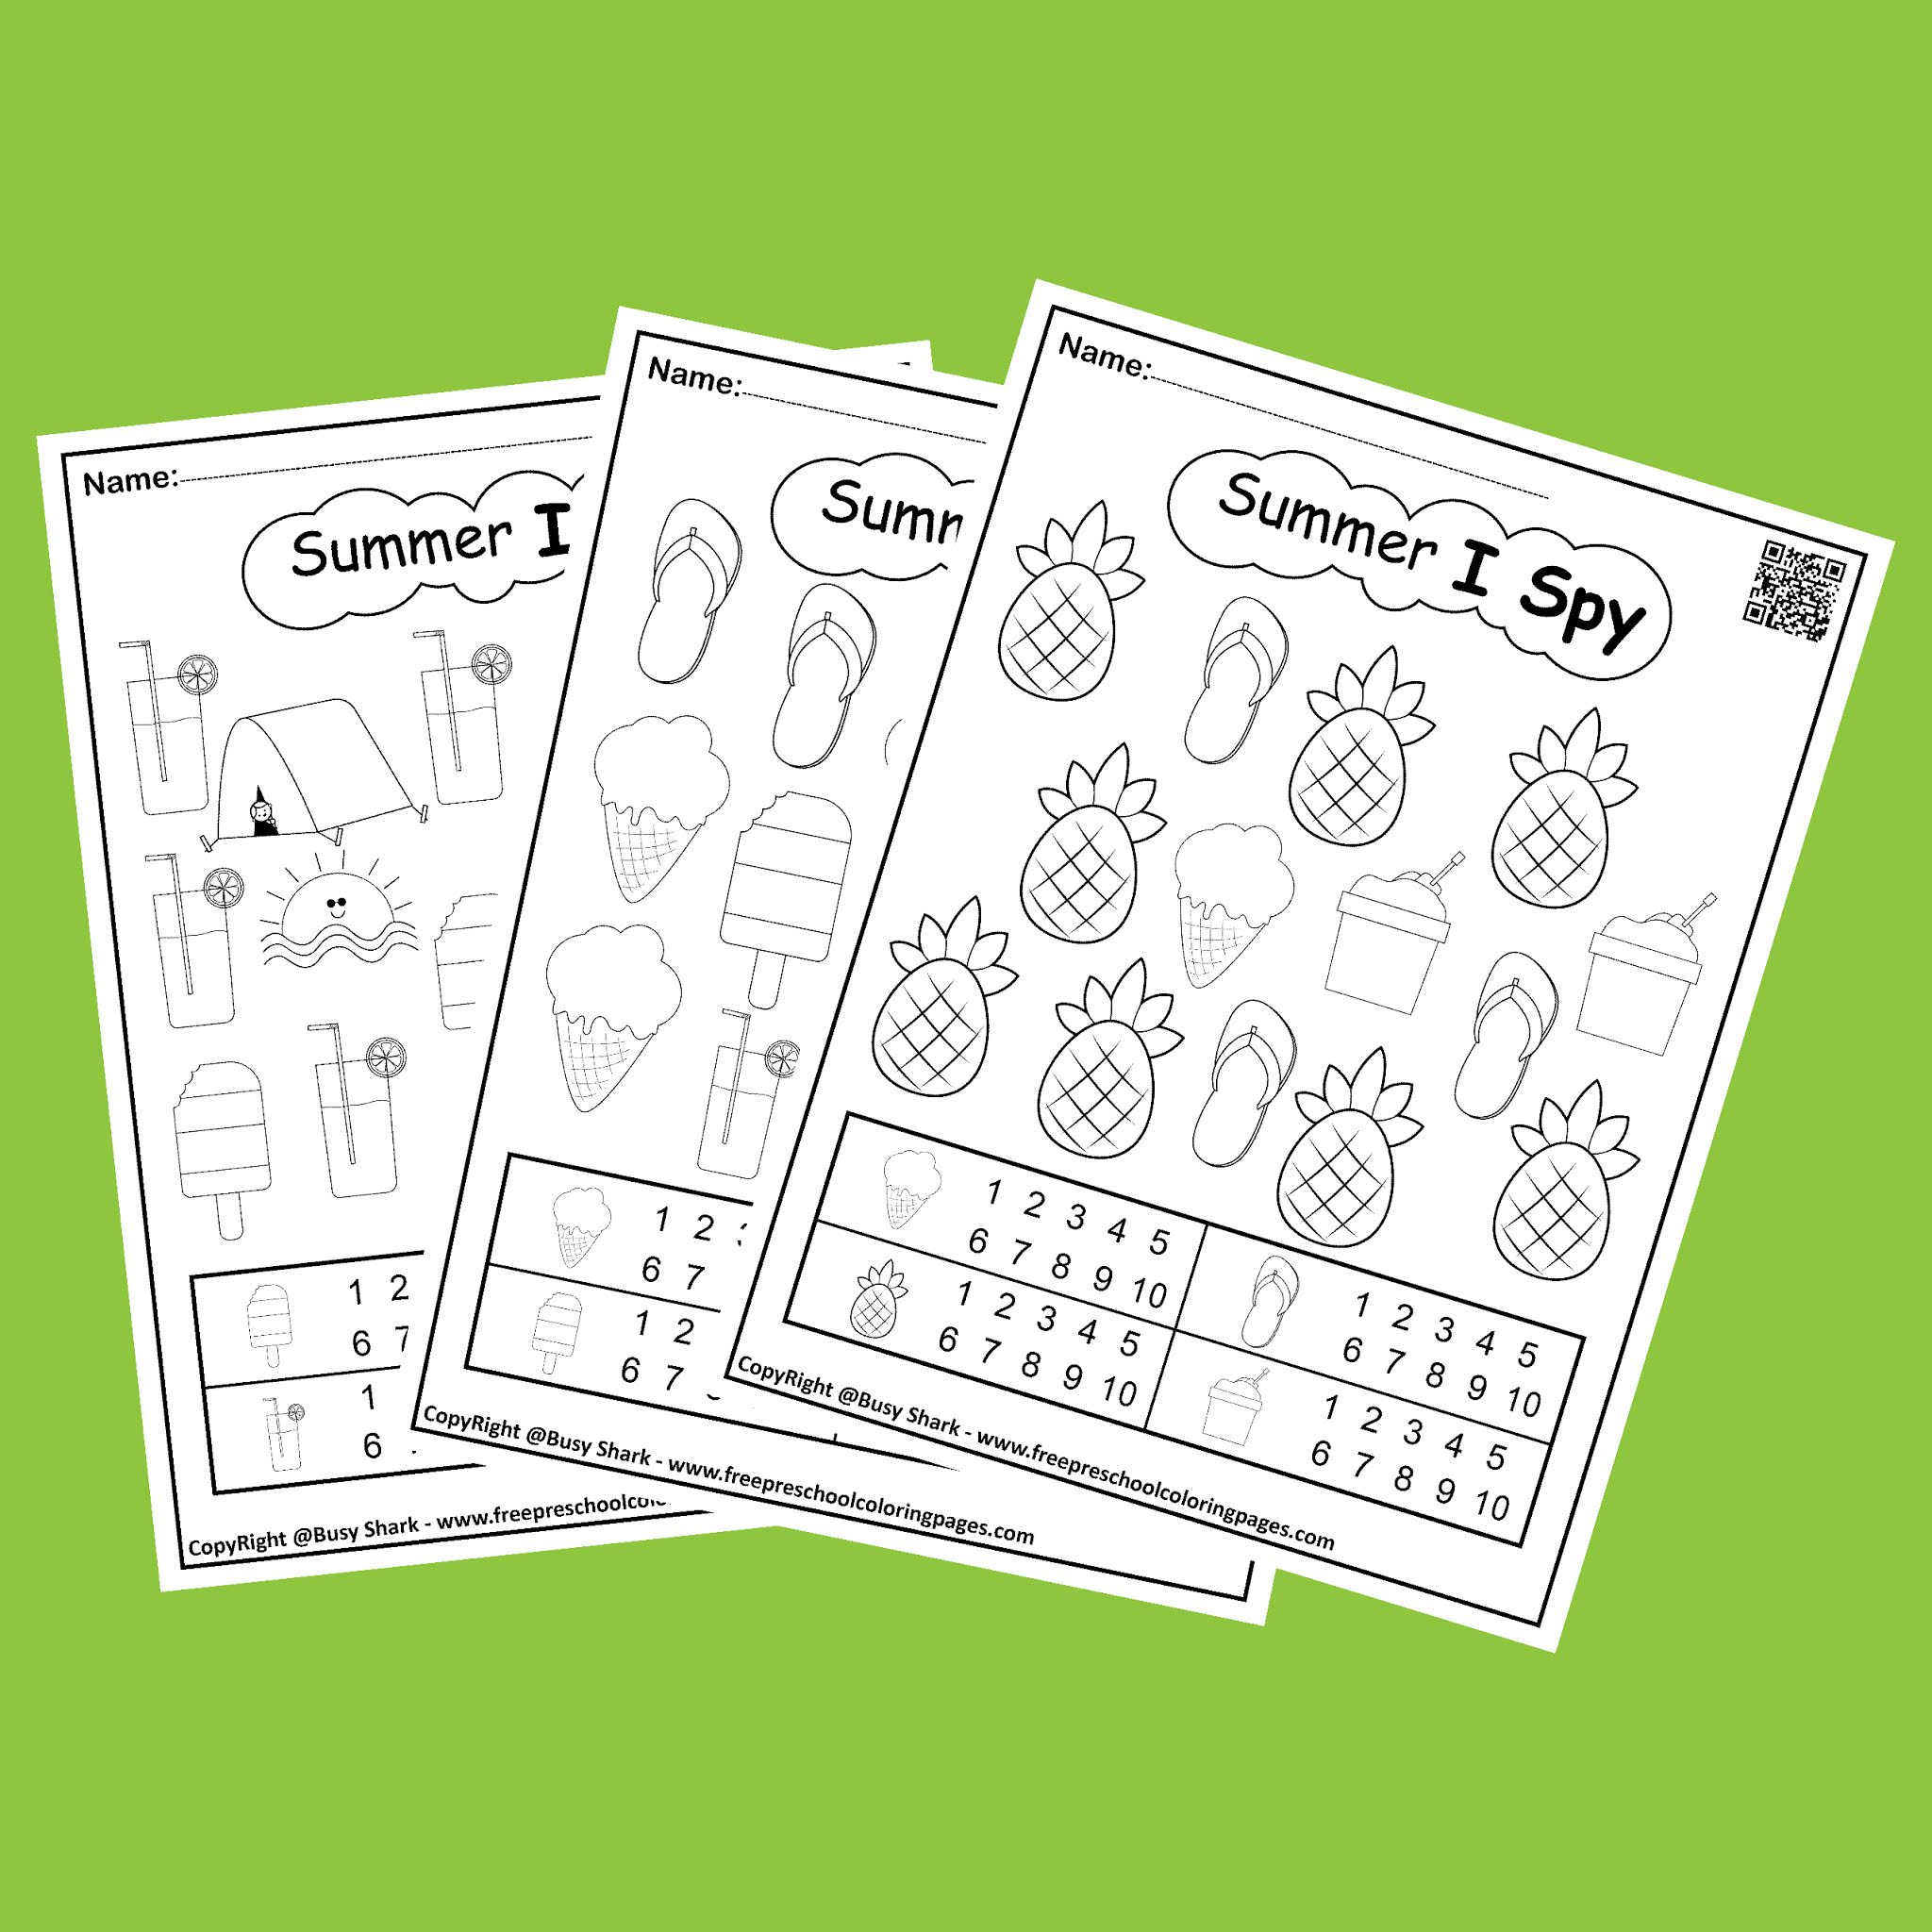 All Summer Coloring Pages